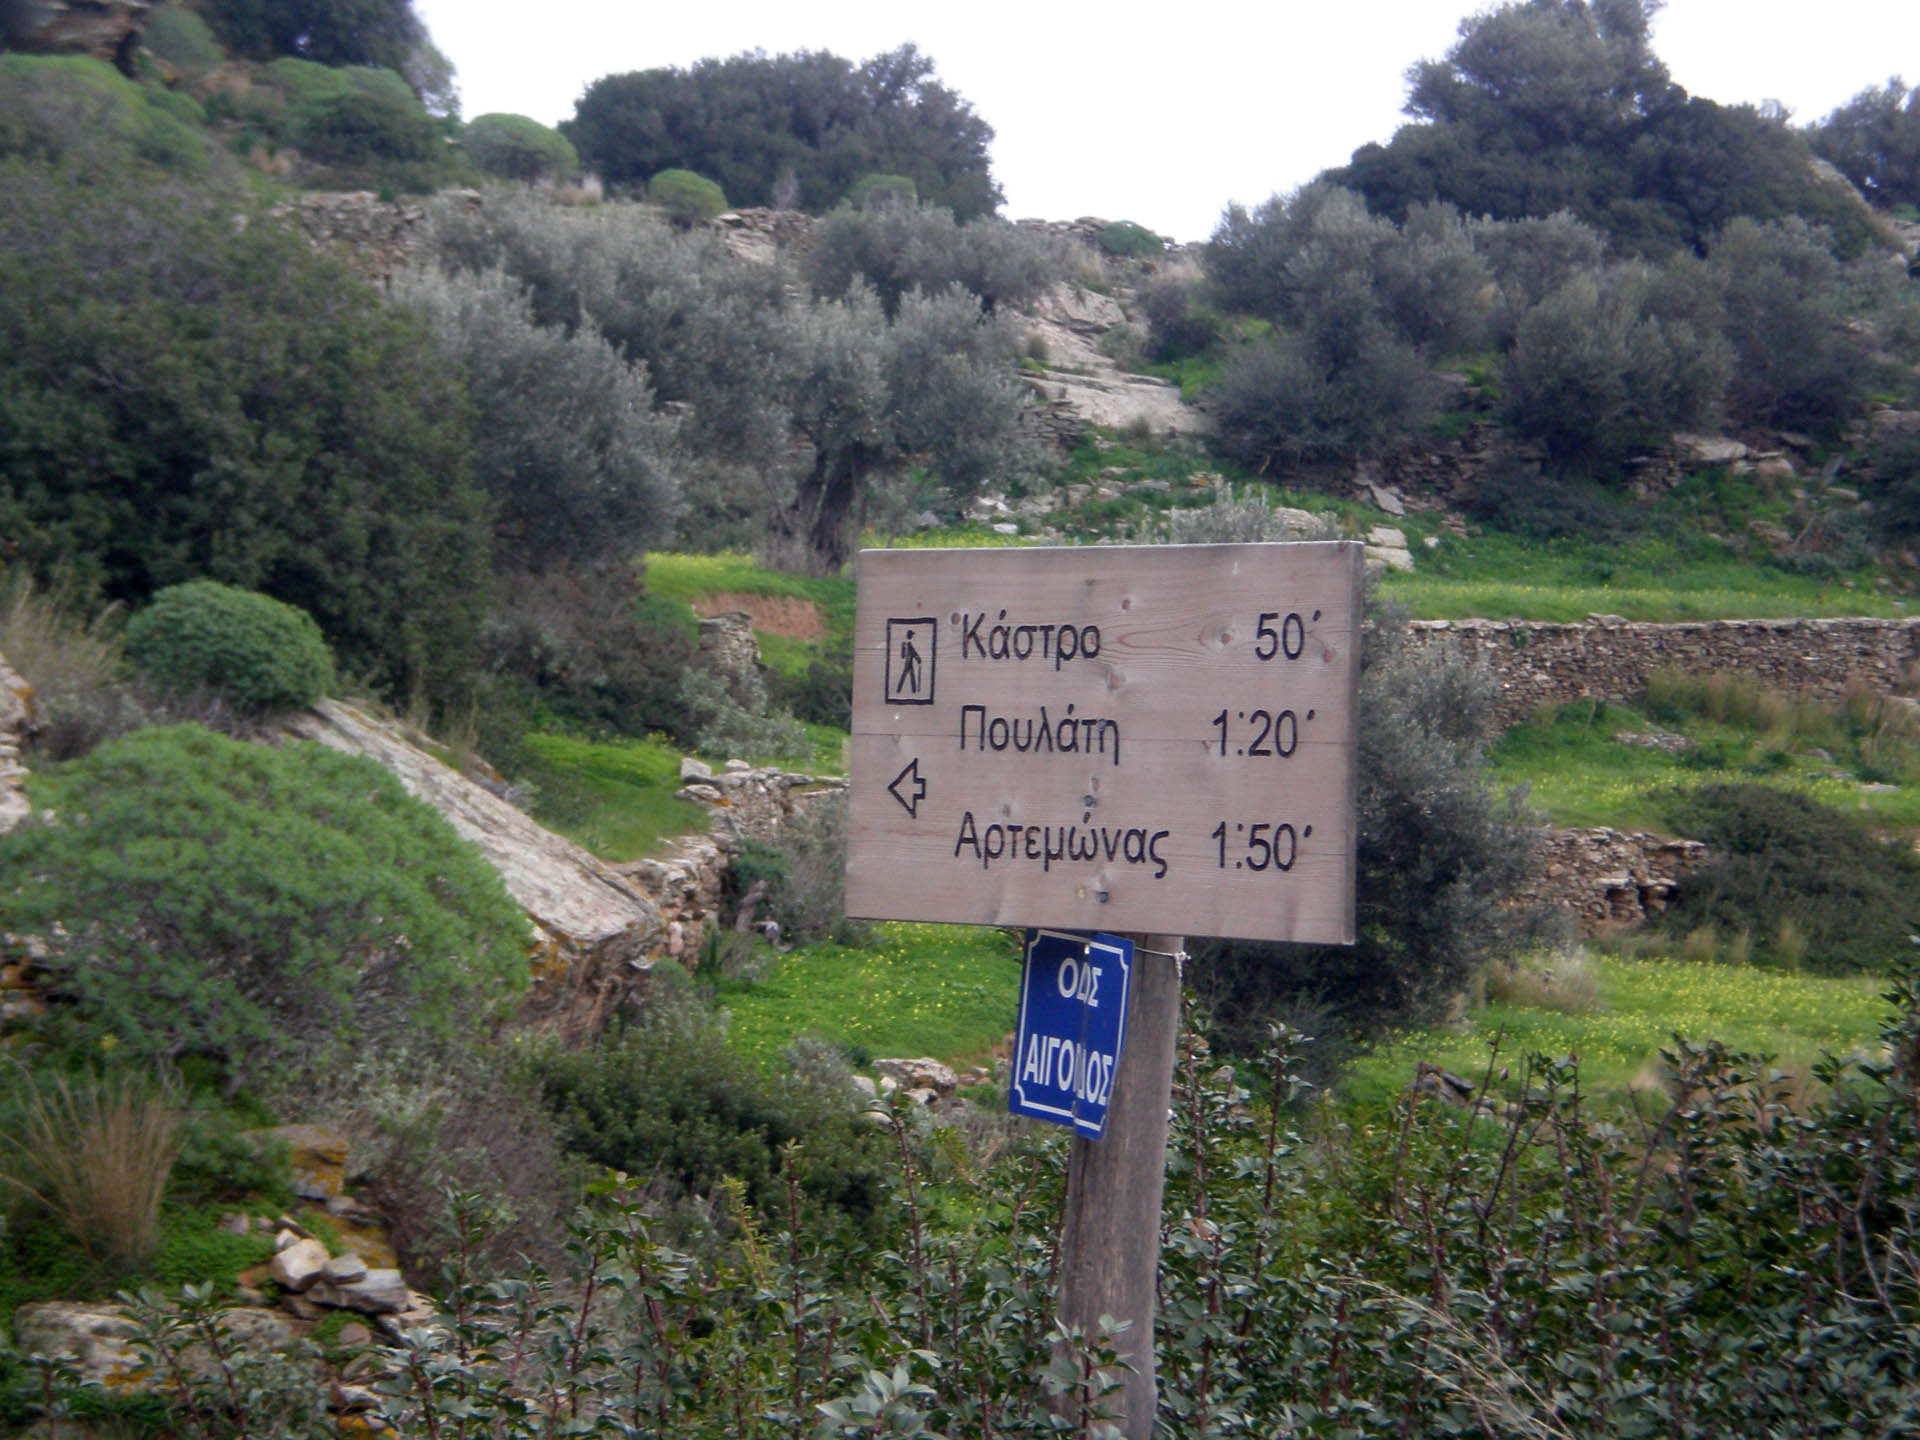 Paths-Sifnos-sign-to-Kastro-Poulati-and-Artemonas